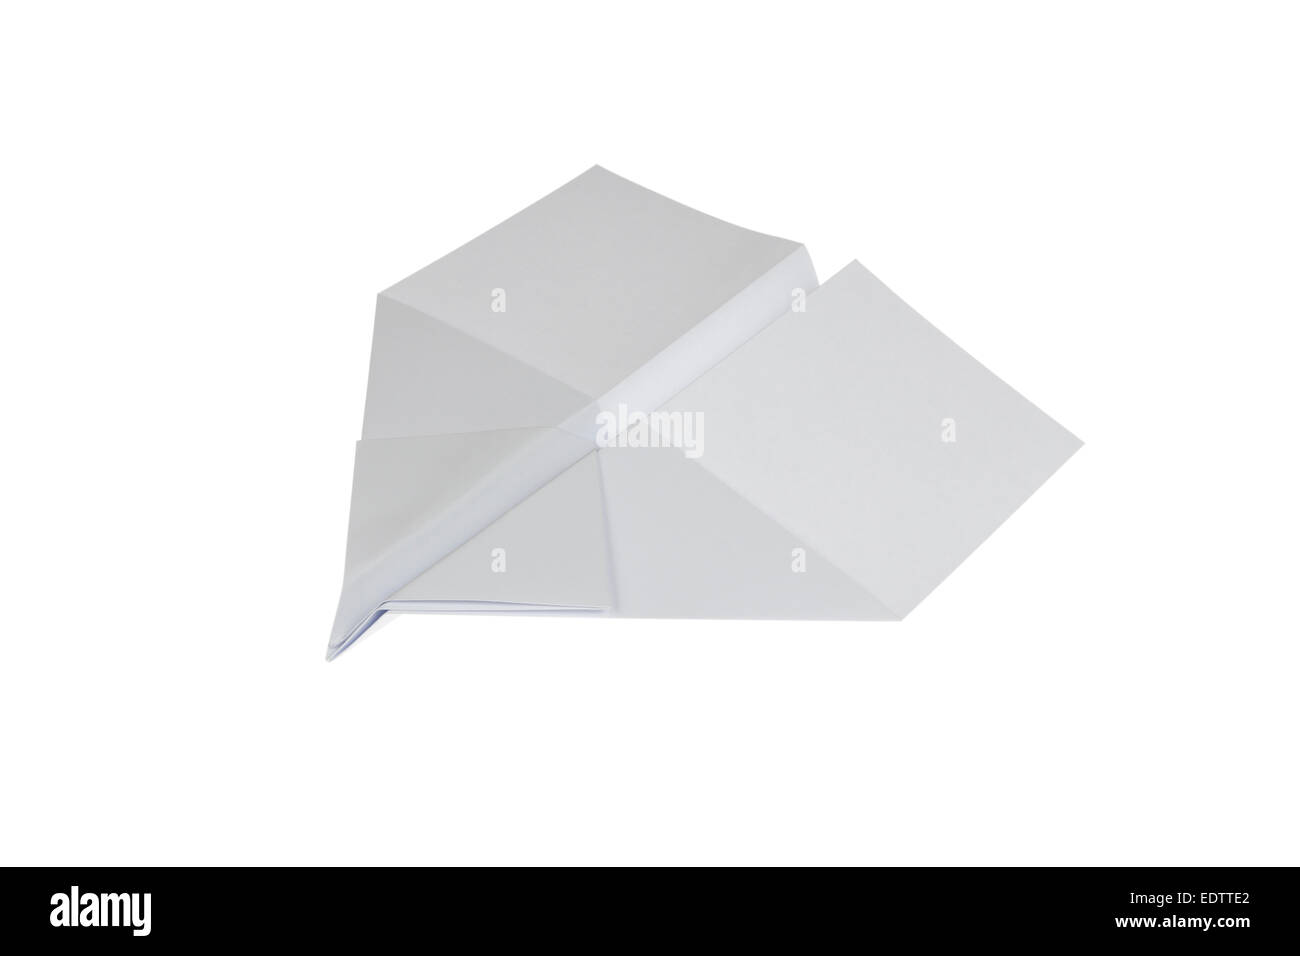 Paper Airplane in swallow shape isolated on white background - Stock Image